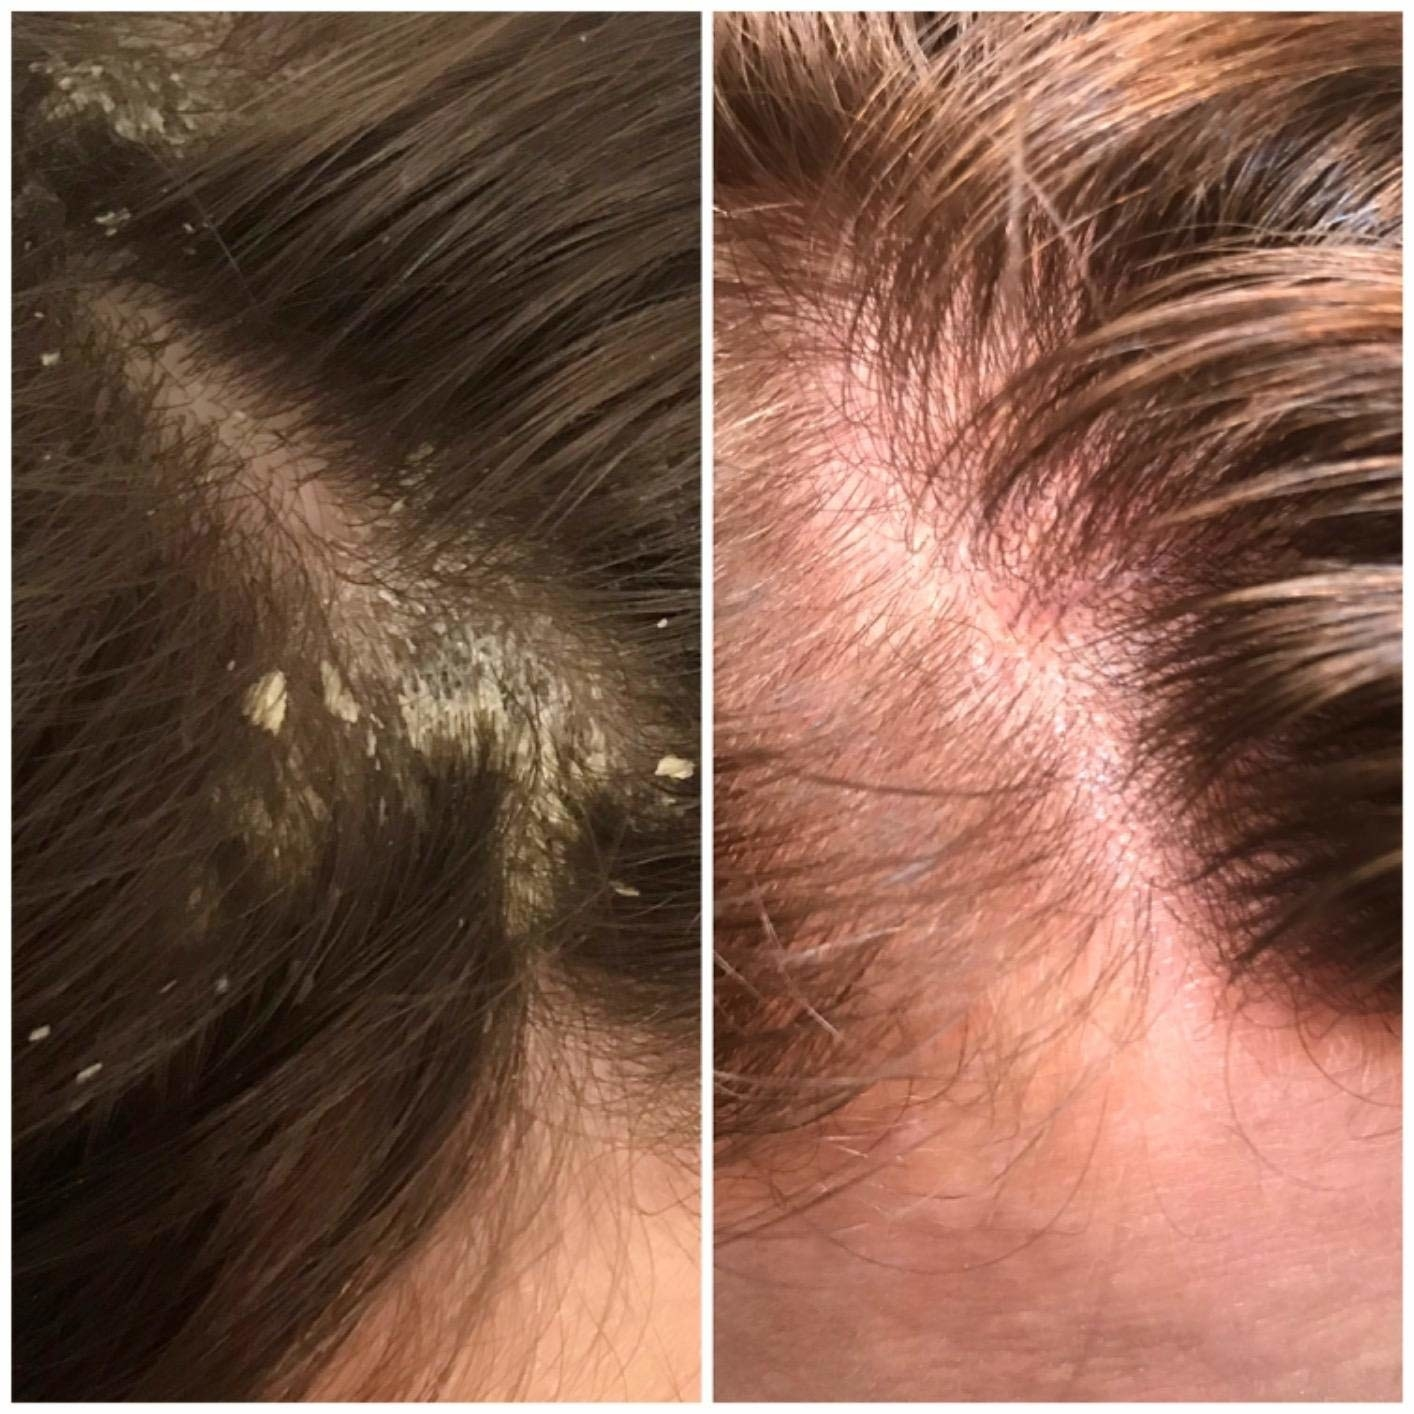 Reviewer images showing scalp before and after using the shampoo. The before photo shows lots of dandruff while the after photo shows a clear scalp